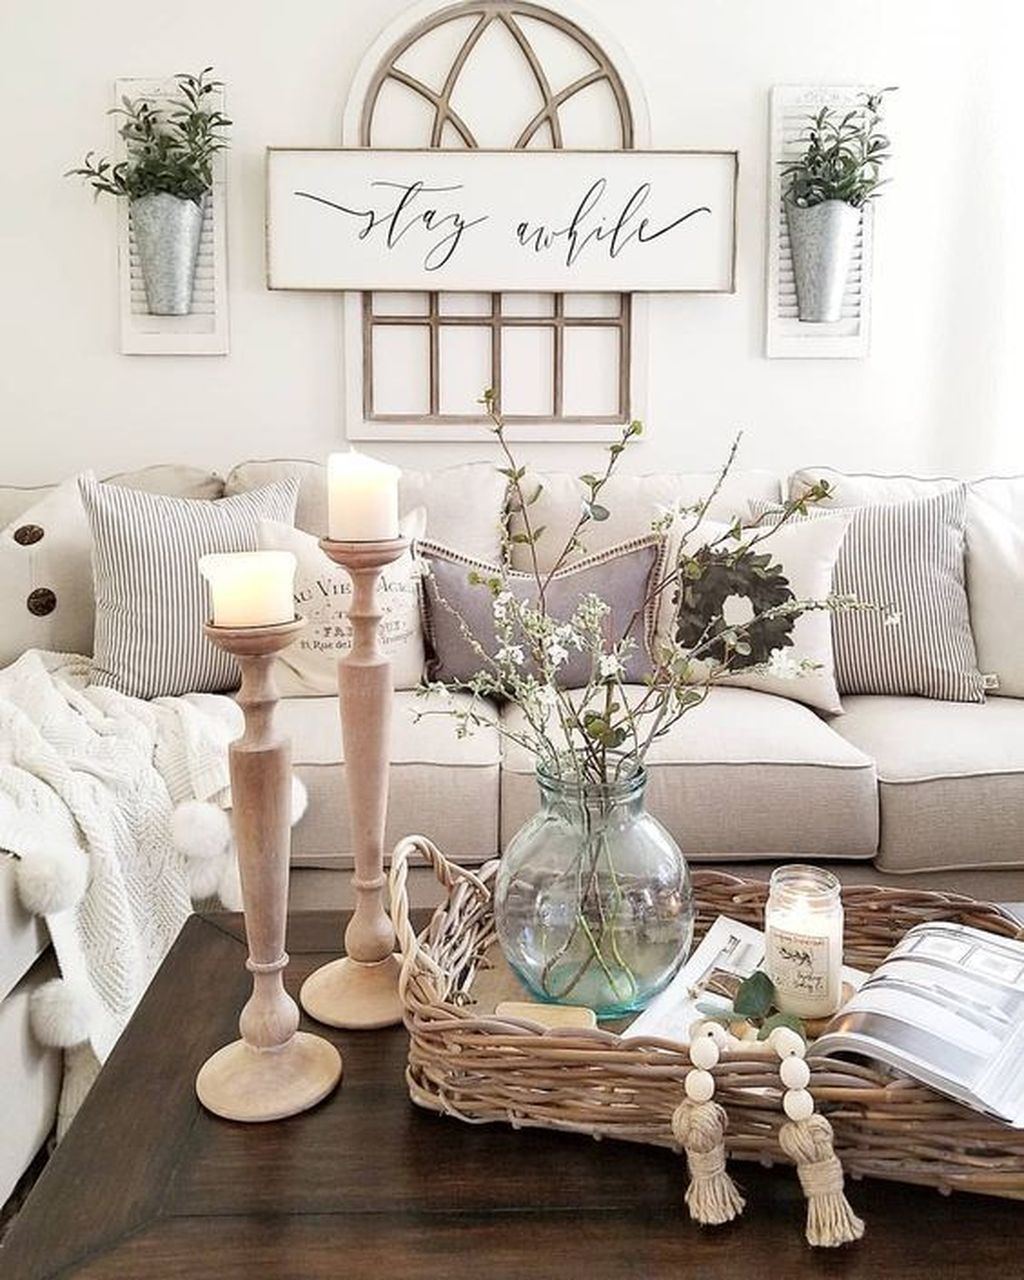 48 Modern Farmhouse Living Room Decor Ideas Page 27 Of 48 Ciara Decor Farmhouse Decor Living Room Farm House Living Room Rustic Farmhouse Living Room